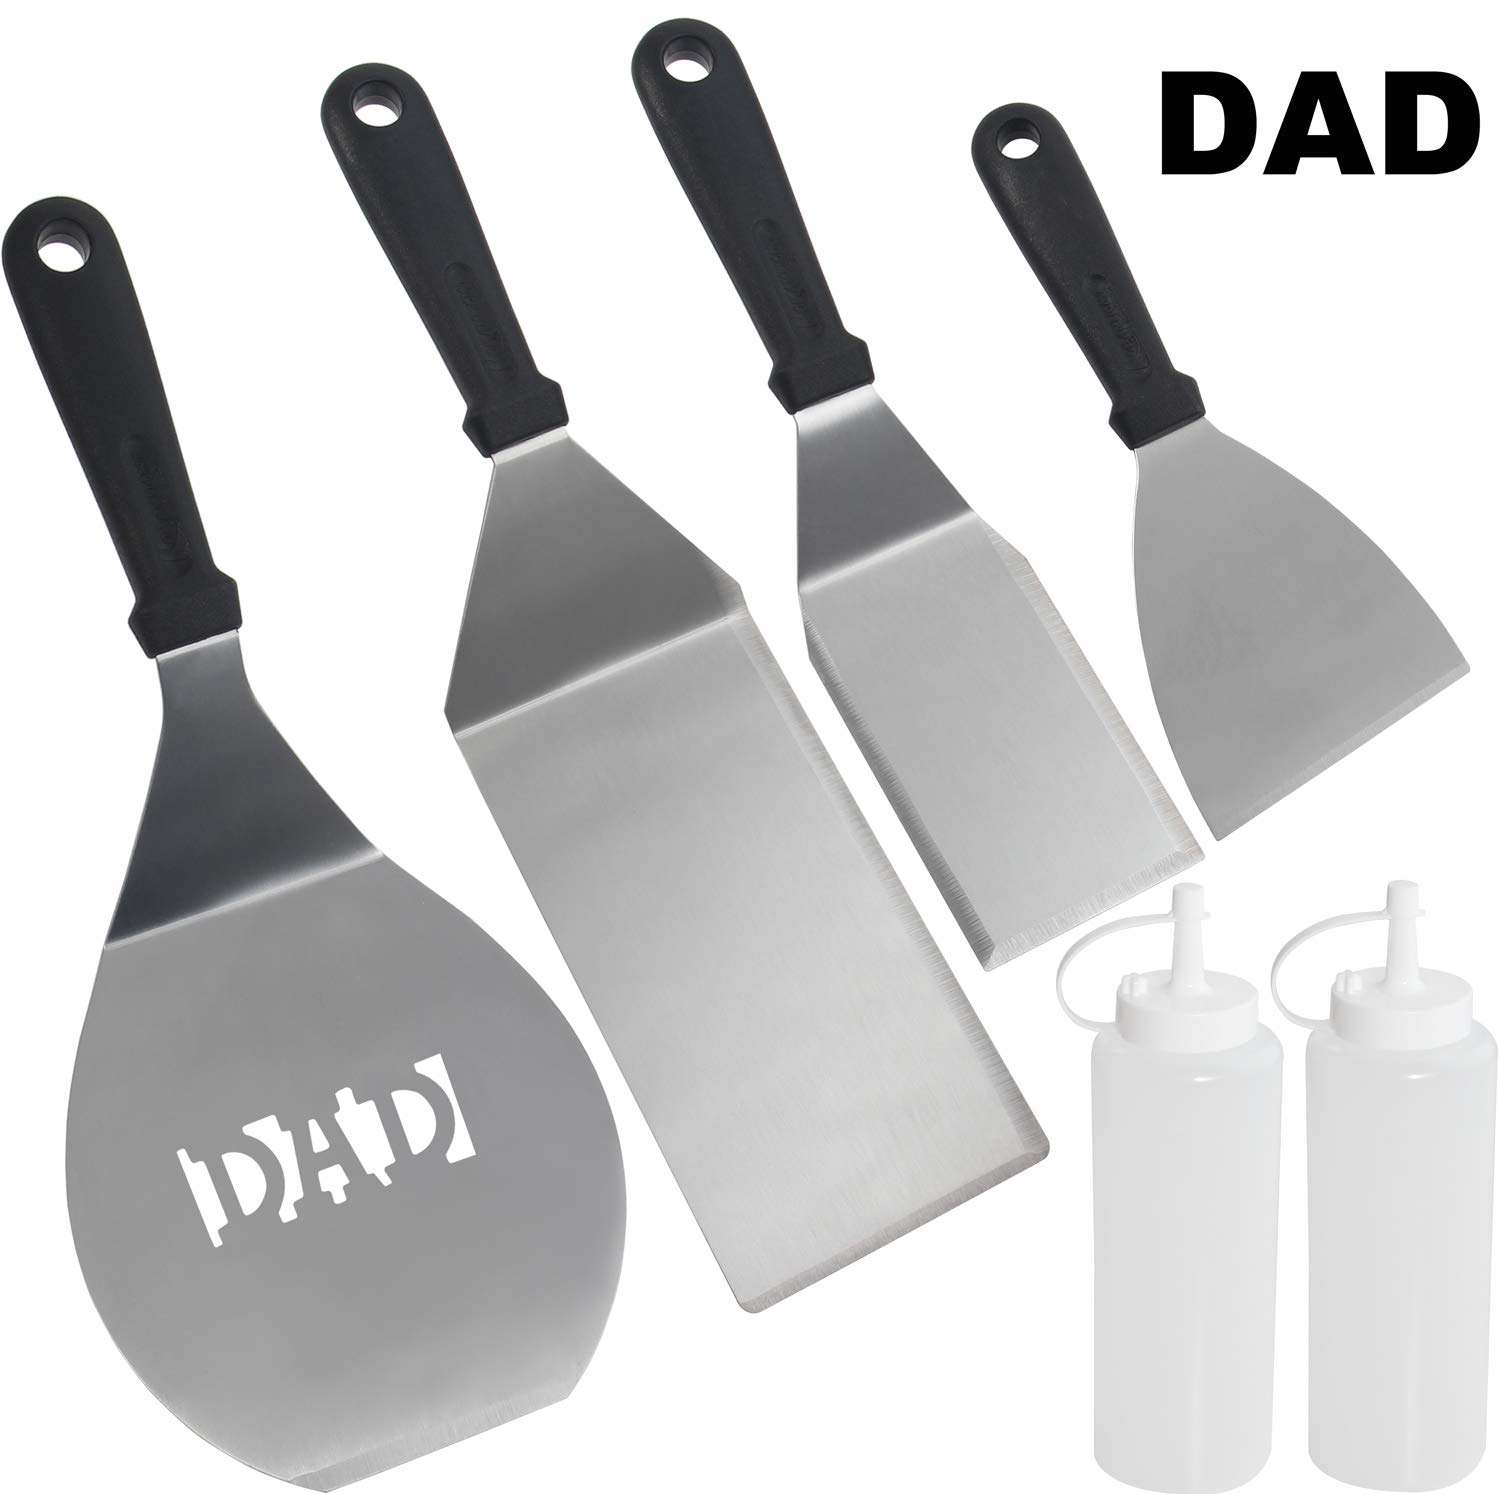 ROMANTICIST 6pc Dad Grill Griddle Accessories Set – Perfect Great BBQ Gift for Men Dad on Fathers Day – Heavy Duty Stainless Steel Griddle Tool Kit for Grill Griddle Flat Top Cooking